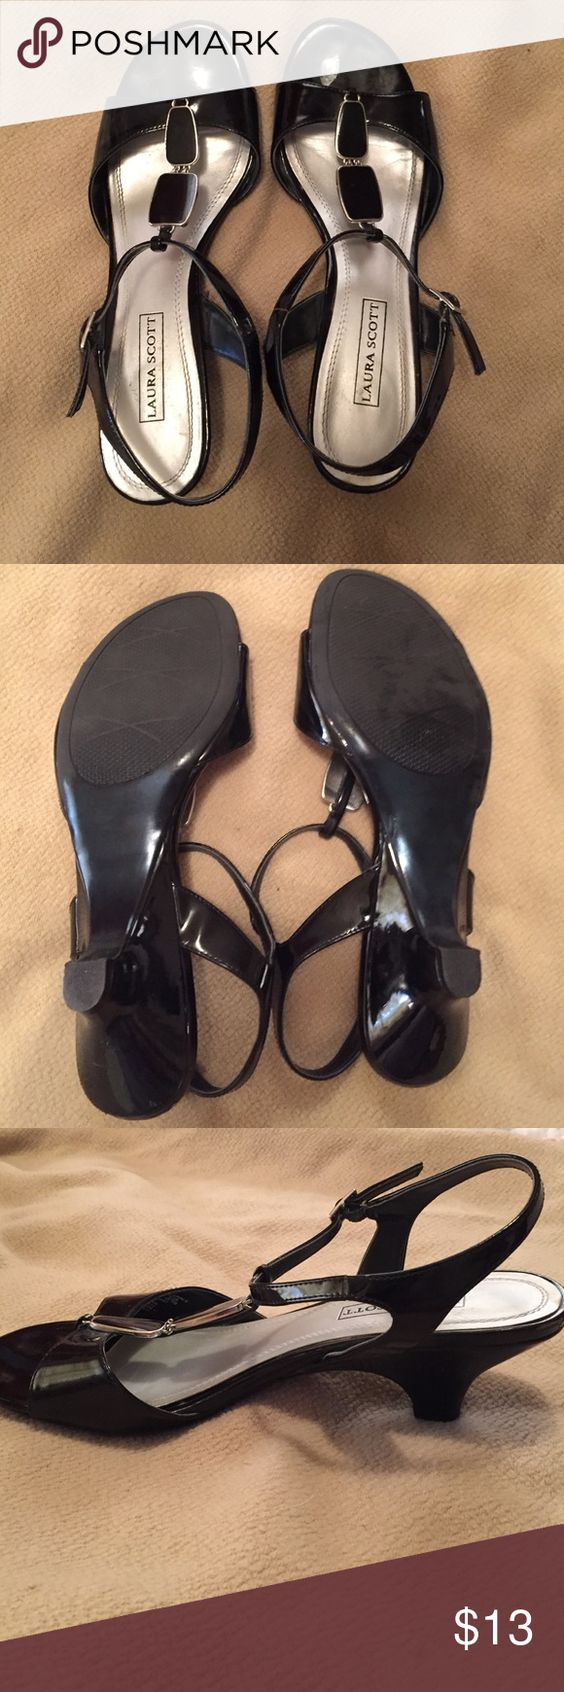 Laura Scott Heels Super cute and COMFORTABLE black heels with black and silver top detail. Heel measures one inch. Pair with a dress or capris. Worn once. Laura Scott Shoes Heels